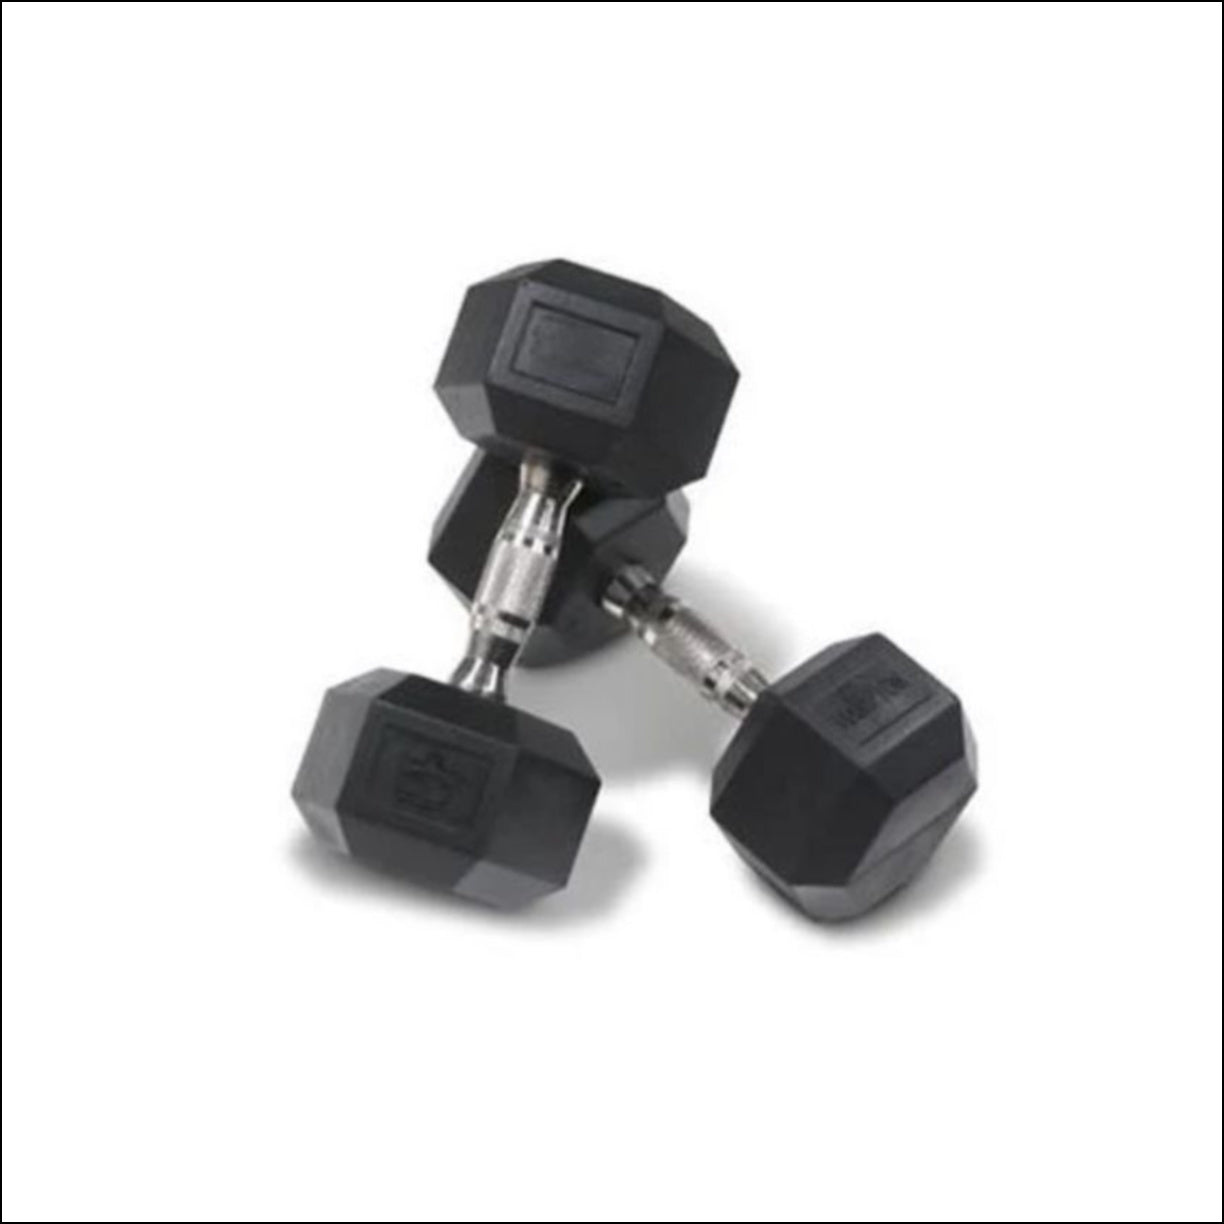 PAIR OF 22.5-KG RUBBER HEX DUMBBELLS  Muscle Motion Rubber coated hexagonal dumbbells with ergonomic handles are designed for increased comfort and improved durability. Rubber coating reduces noise improves life cycle of the product  (other finishes such as chrome and cast iron are subject to chipping and rust). Rubber coated dumbbells are also kinder on floor surfaces. The hexagonal shaped ends are designed to prevent the dumbbell from rolling on the floor or dumbbell rack.